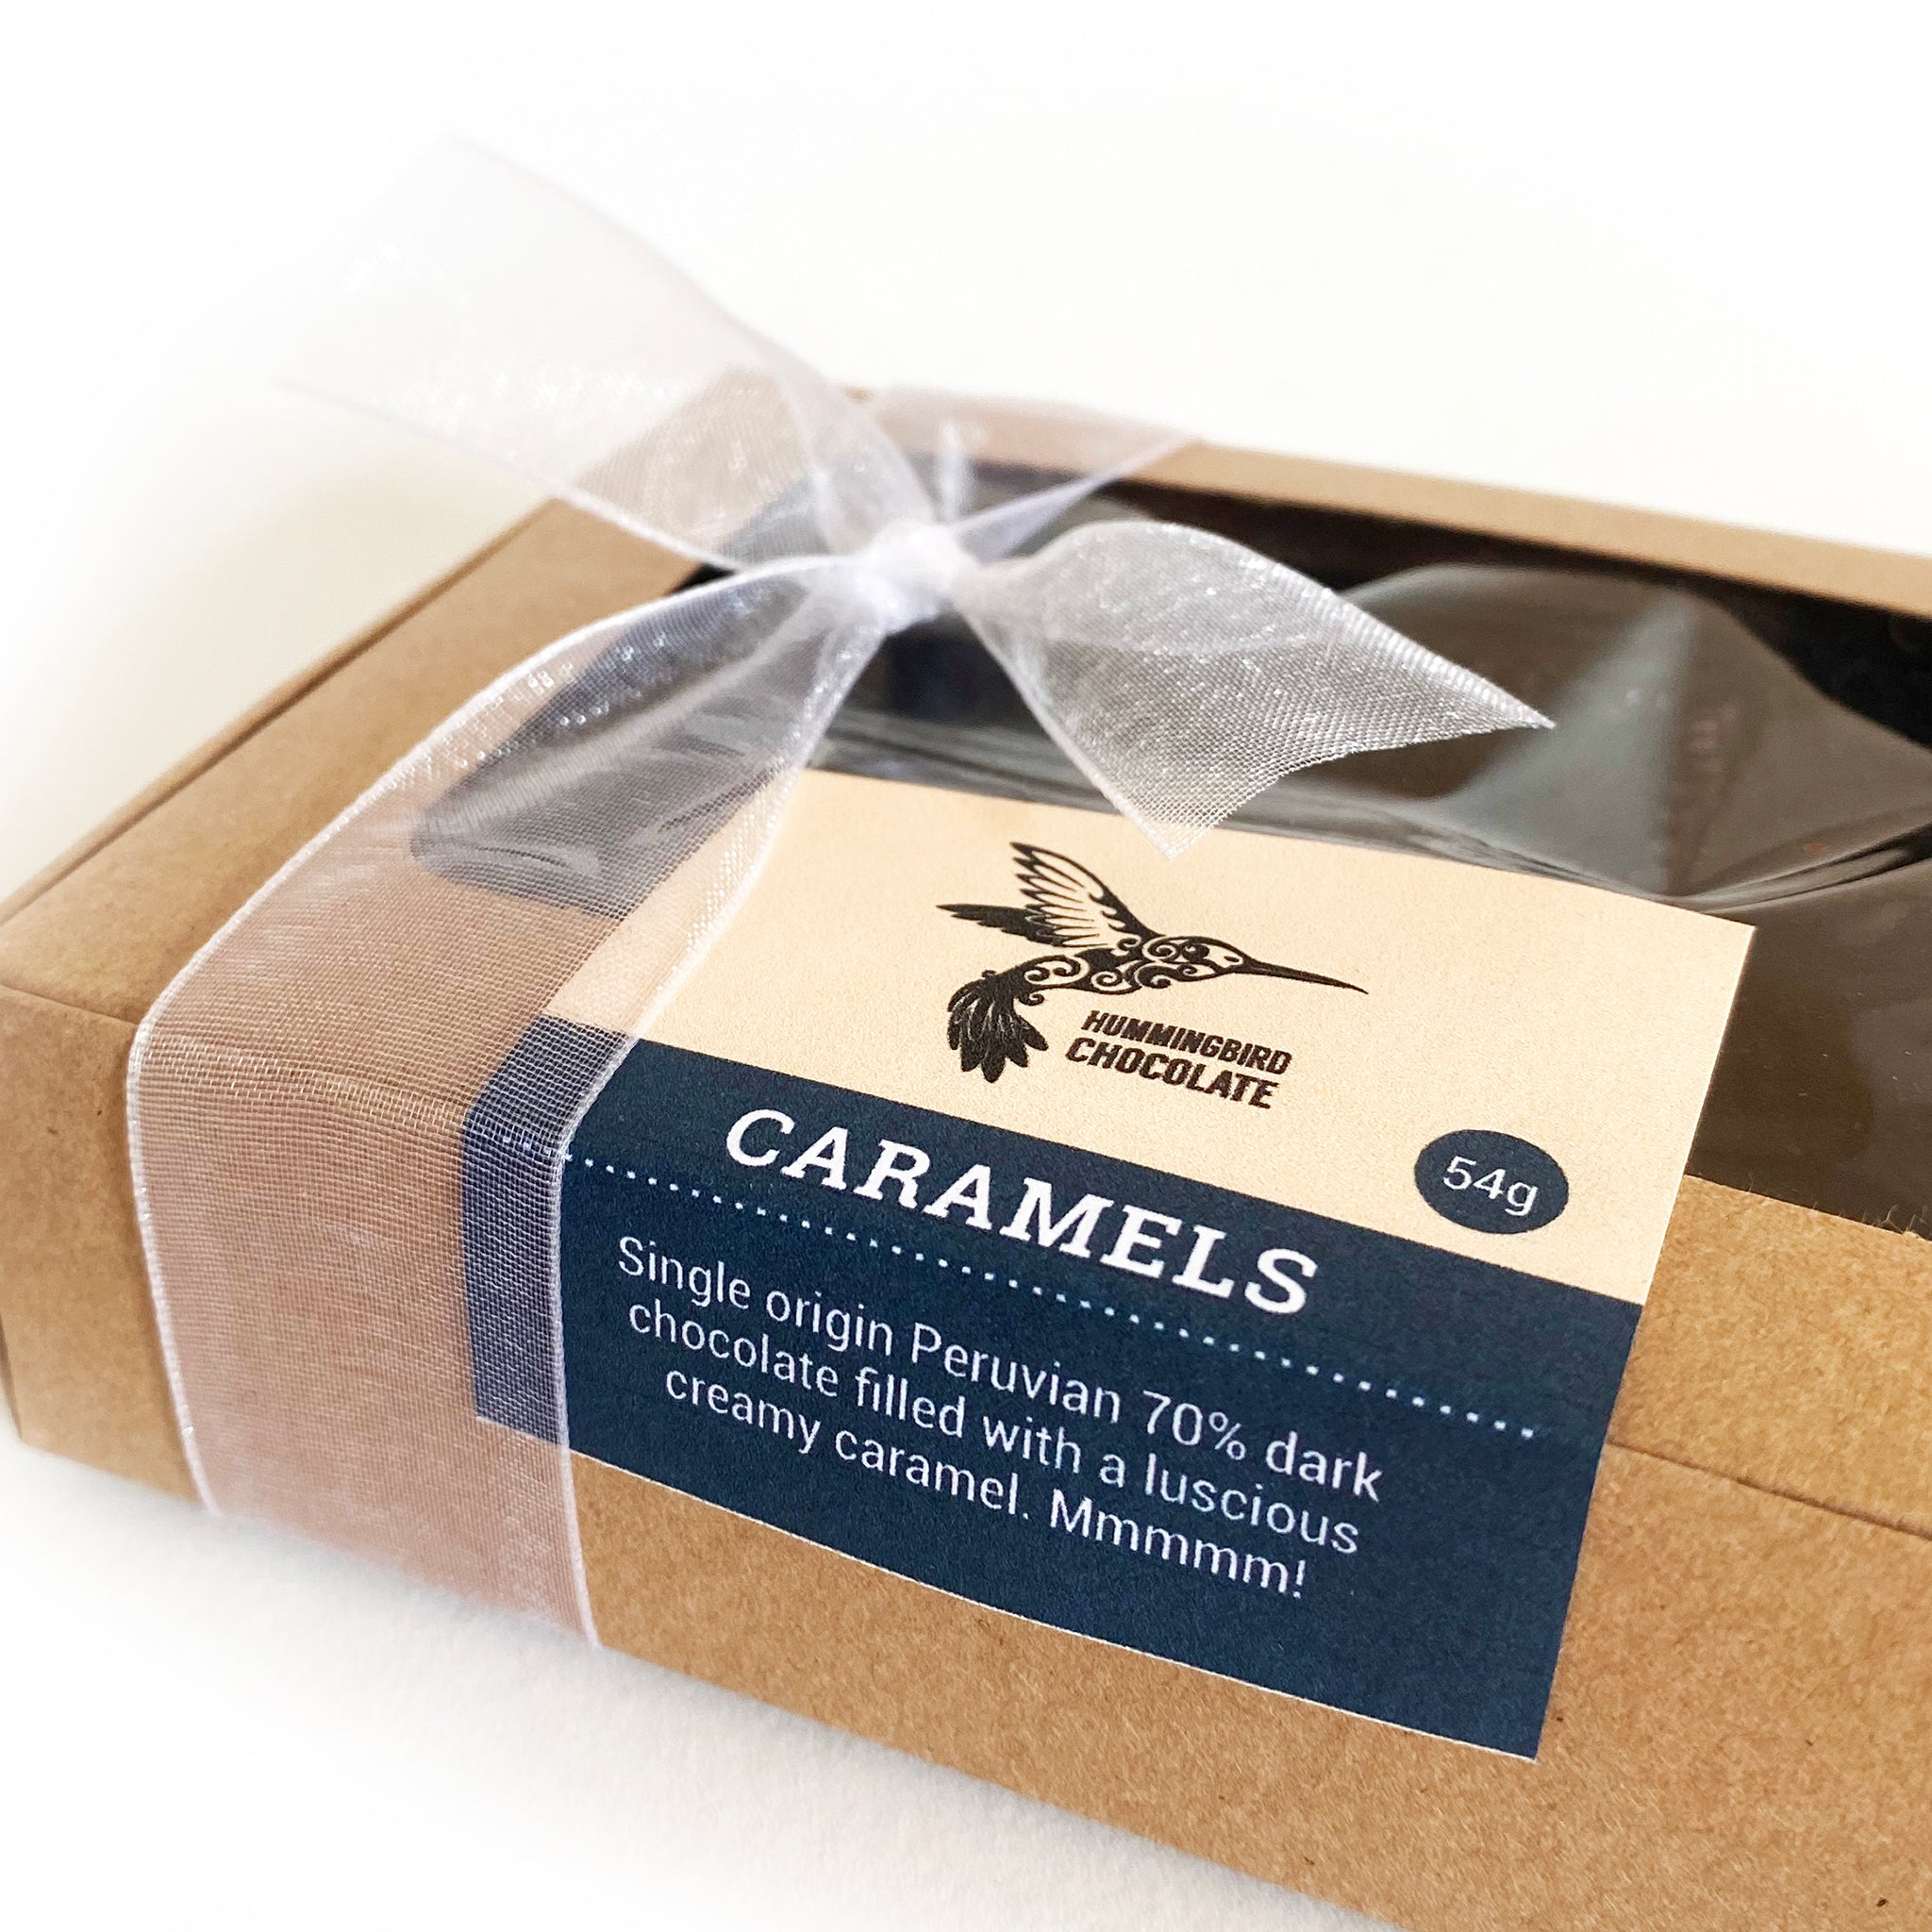 Side view of box of 6 dark chocolate filled caramels, wrapped in a paper box and bow